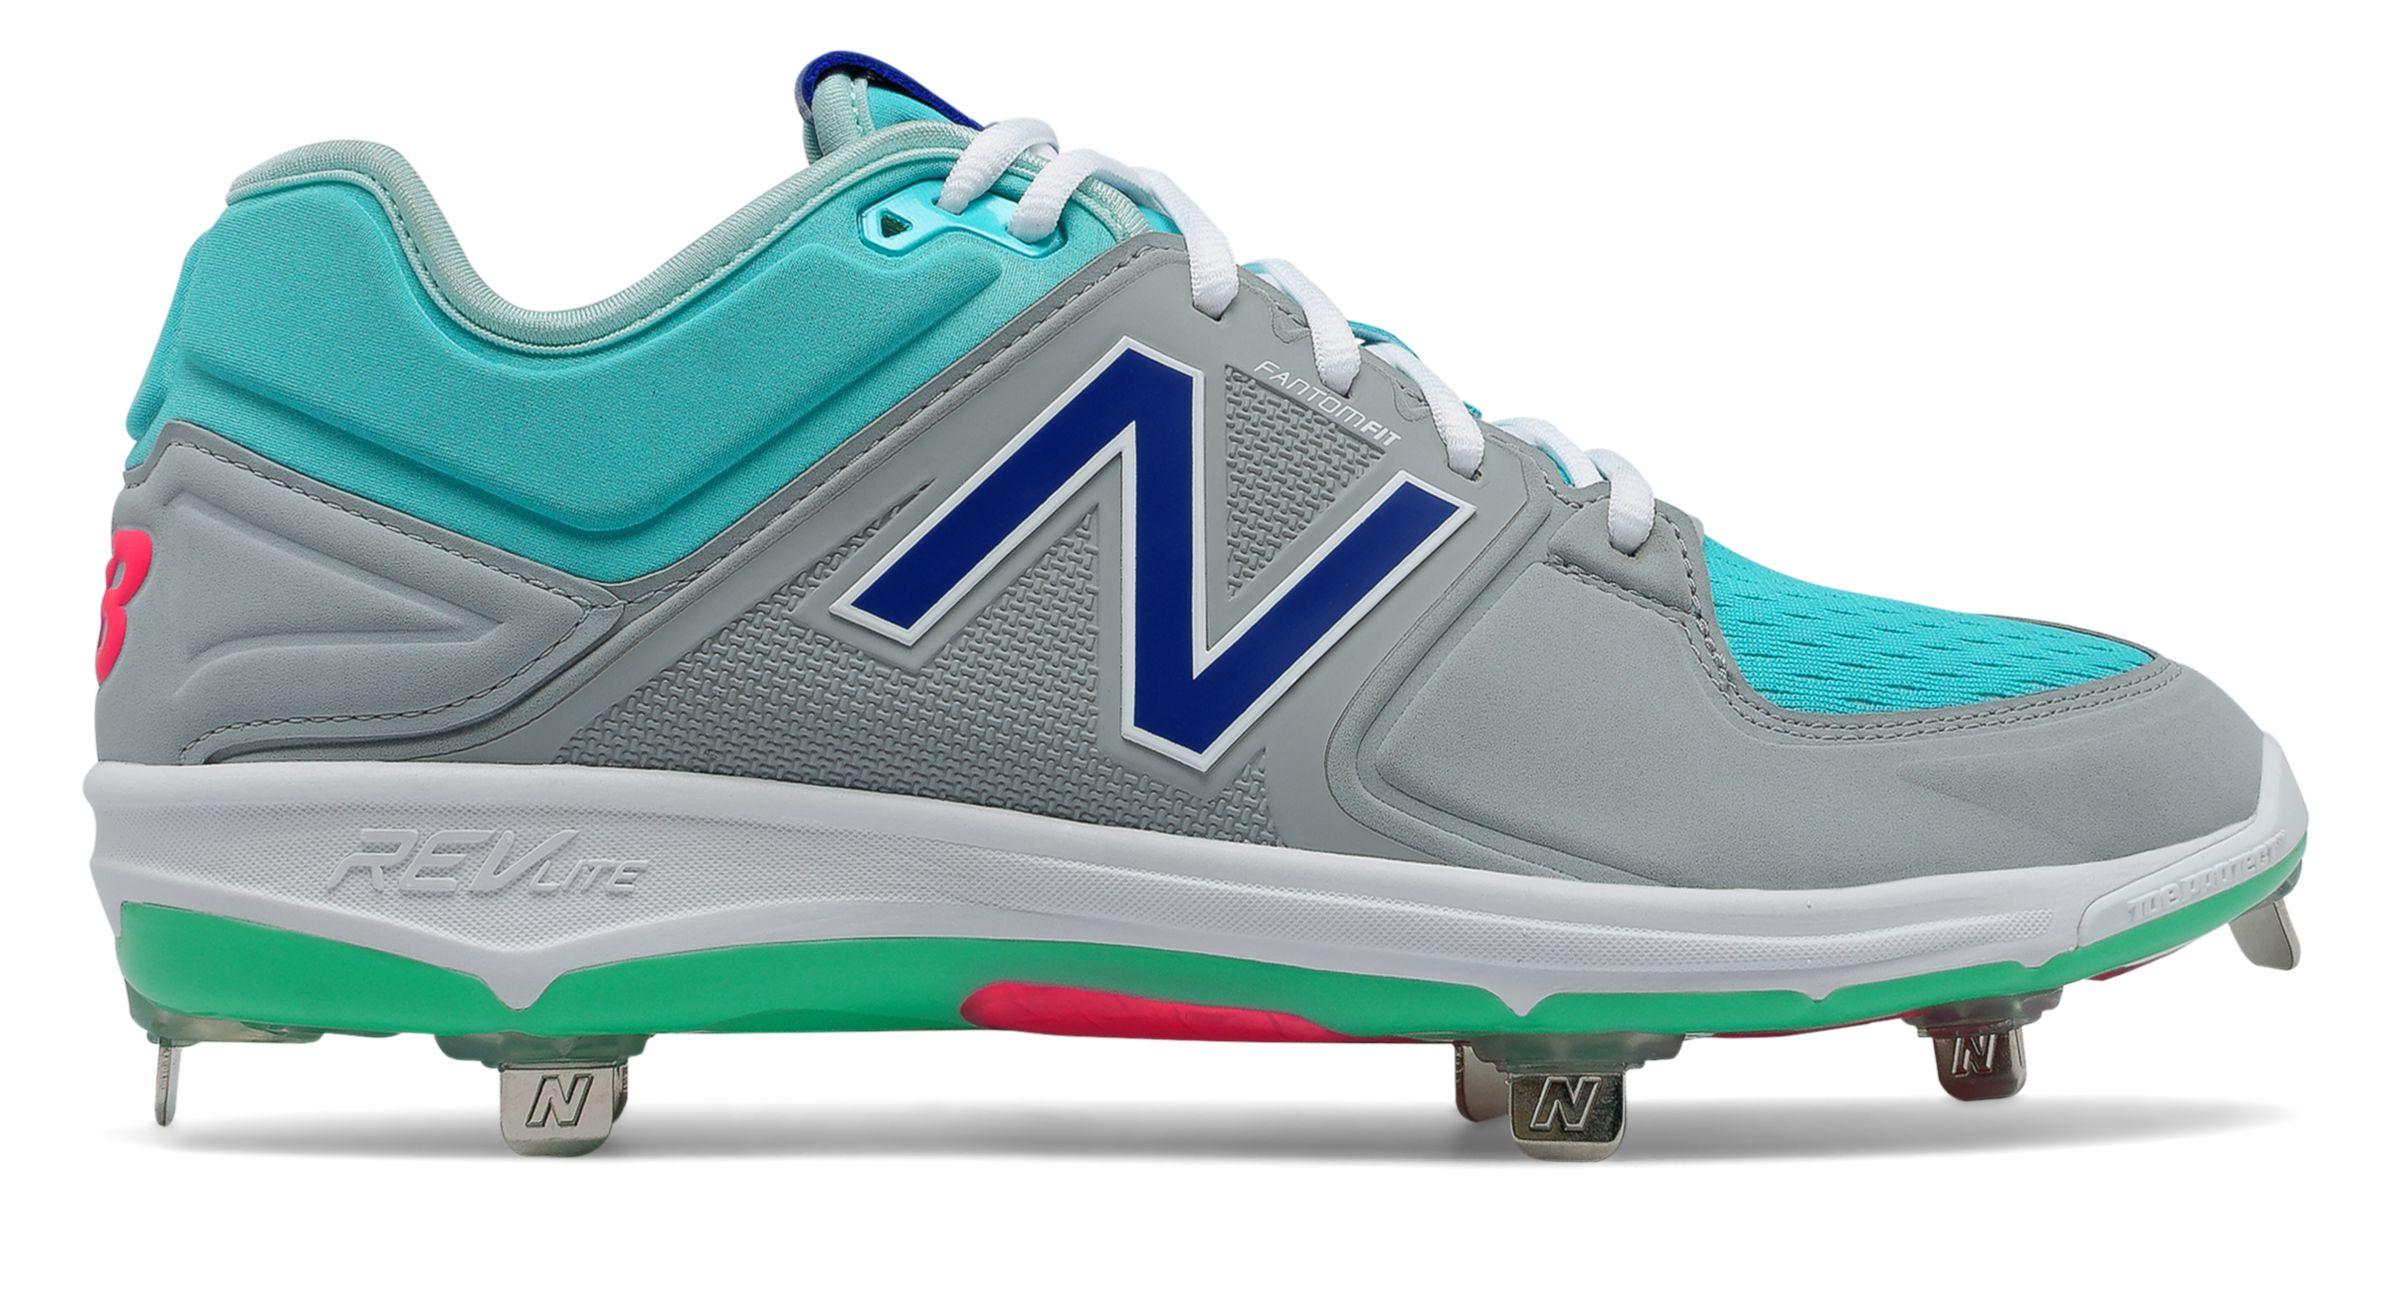 9923aac12f1e8 New Balance Low-Cut 3000v3 Metal Baseball Cleat Mens Shoes Grey with ...